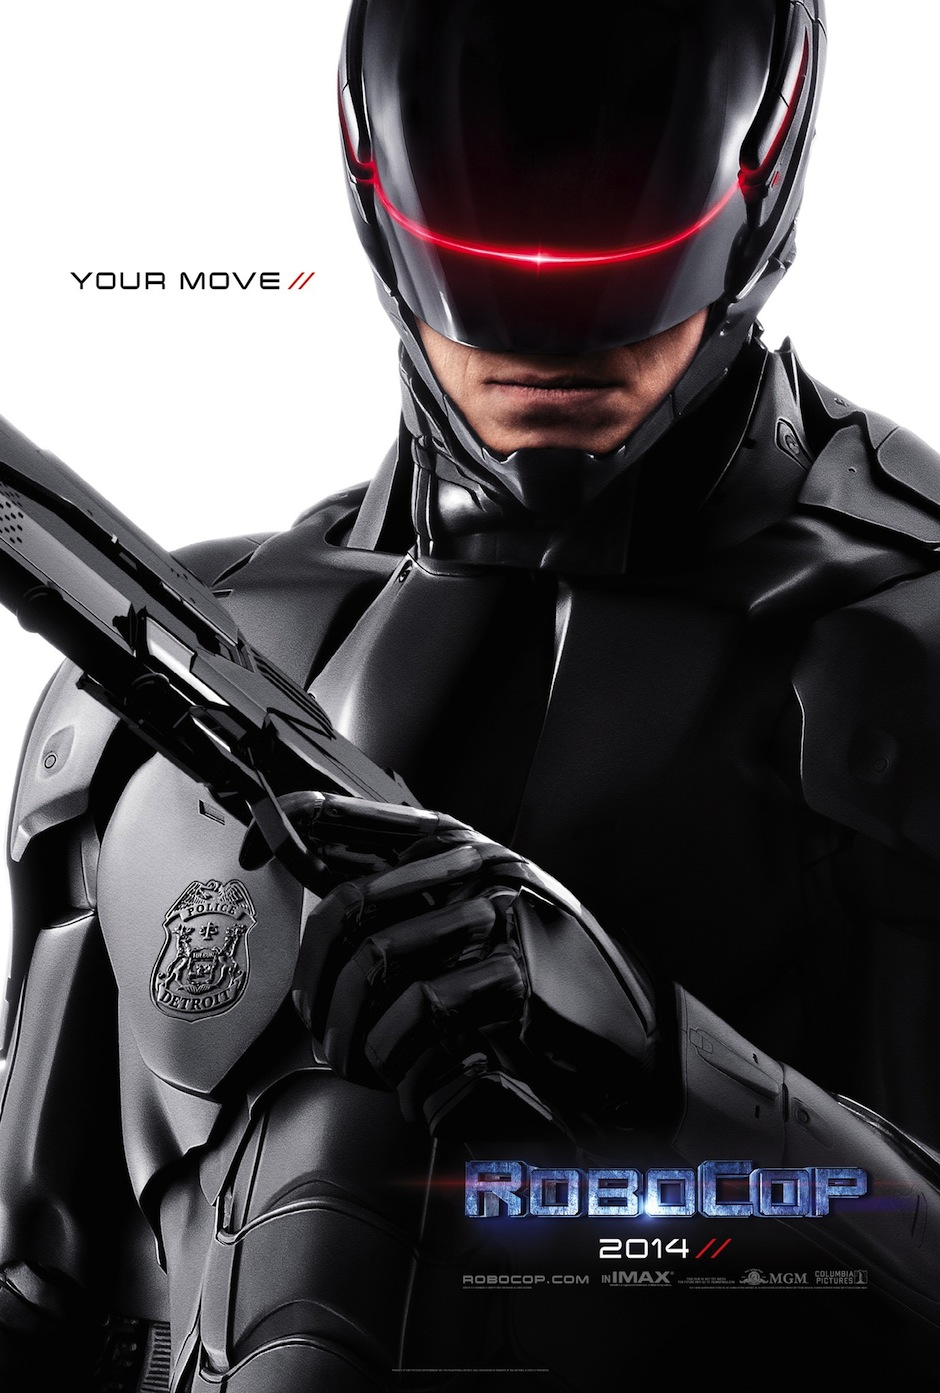 Your Move - Primeiro post do reboot de Robocop